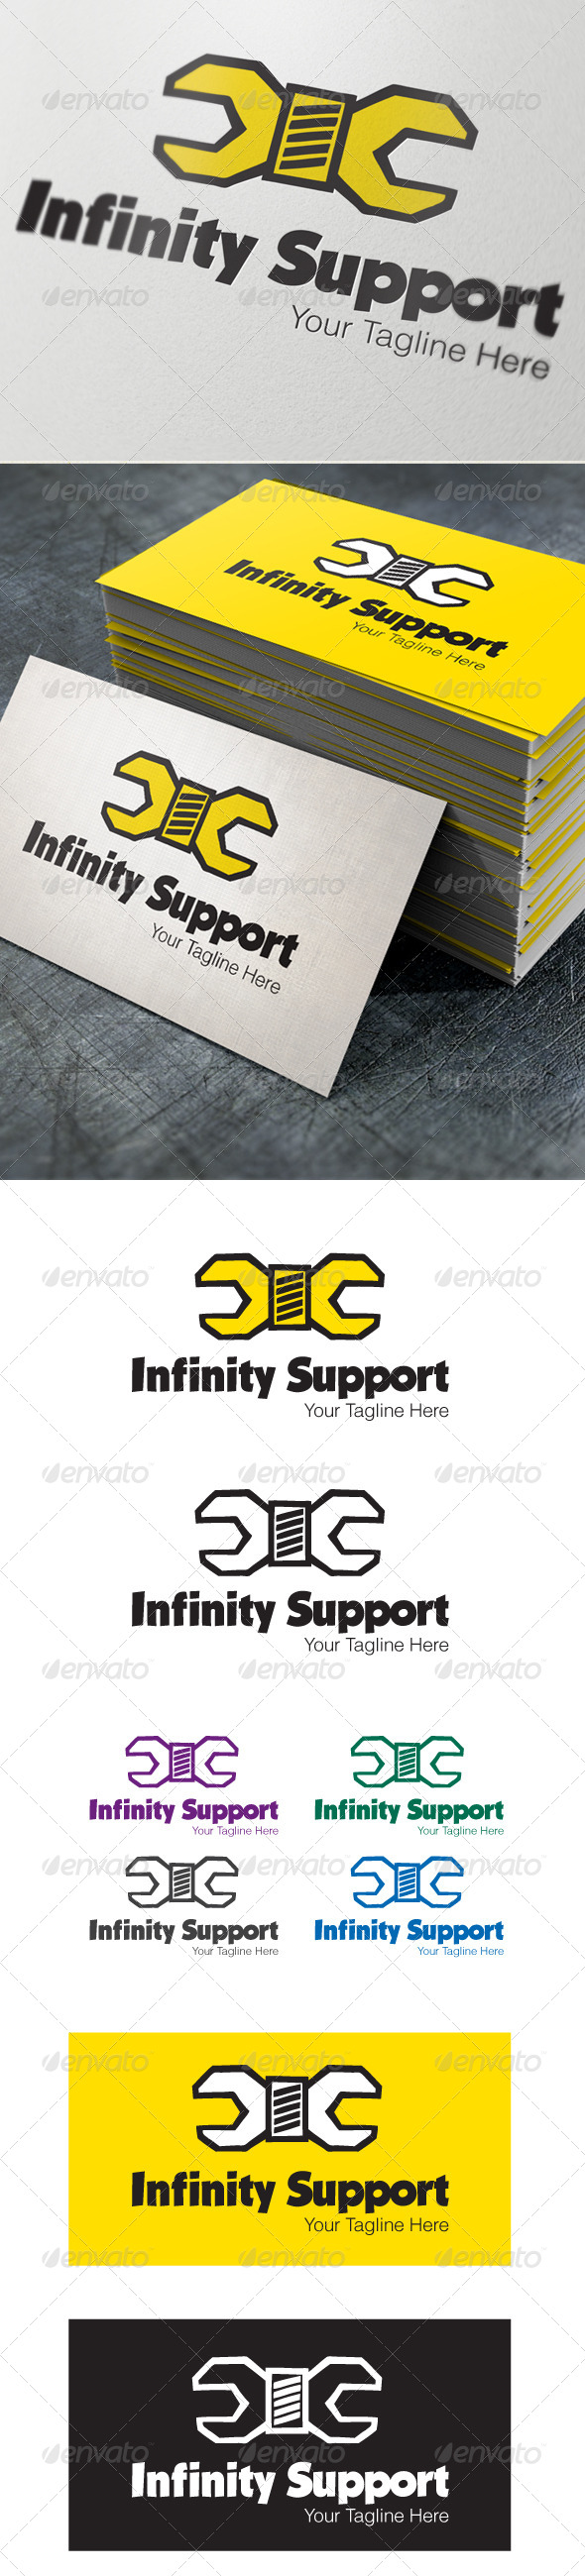 GraphicRiver INFINITY SUPPORT 4534264